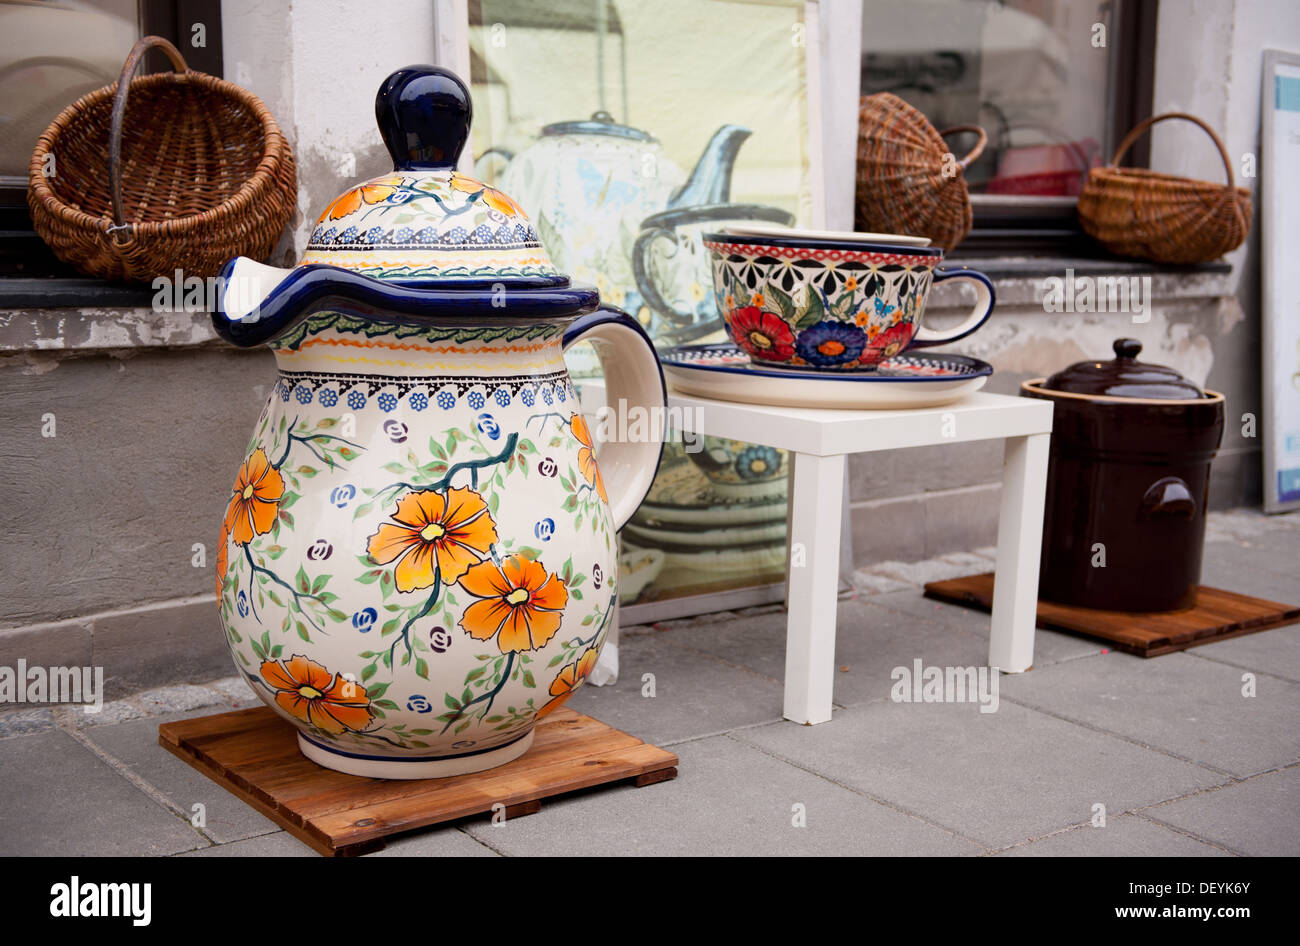 unique painted earthenware objects in Old Town - Stock Image